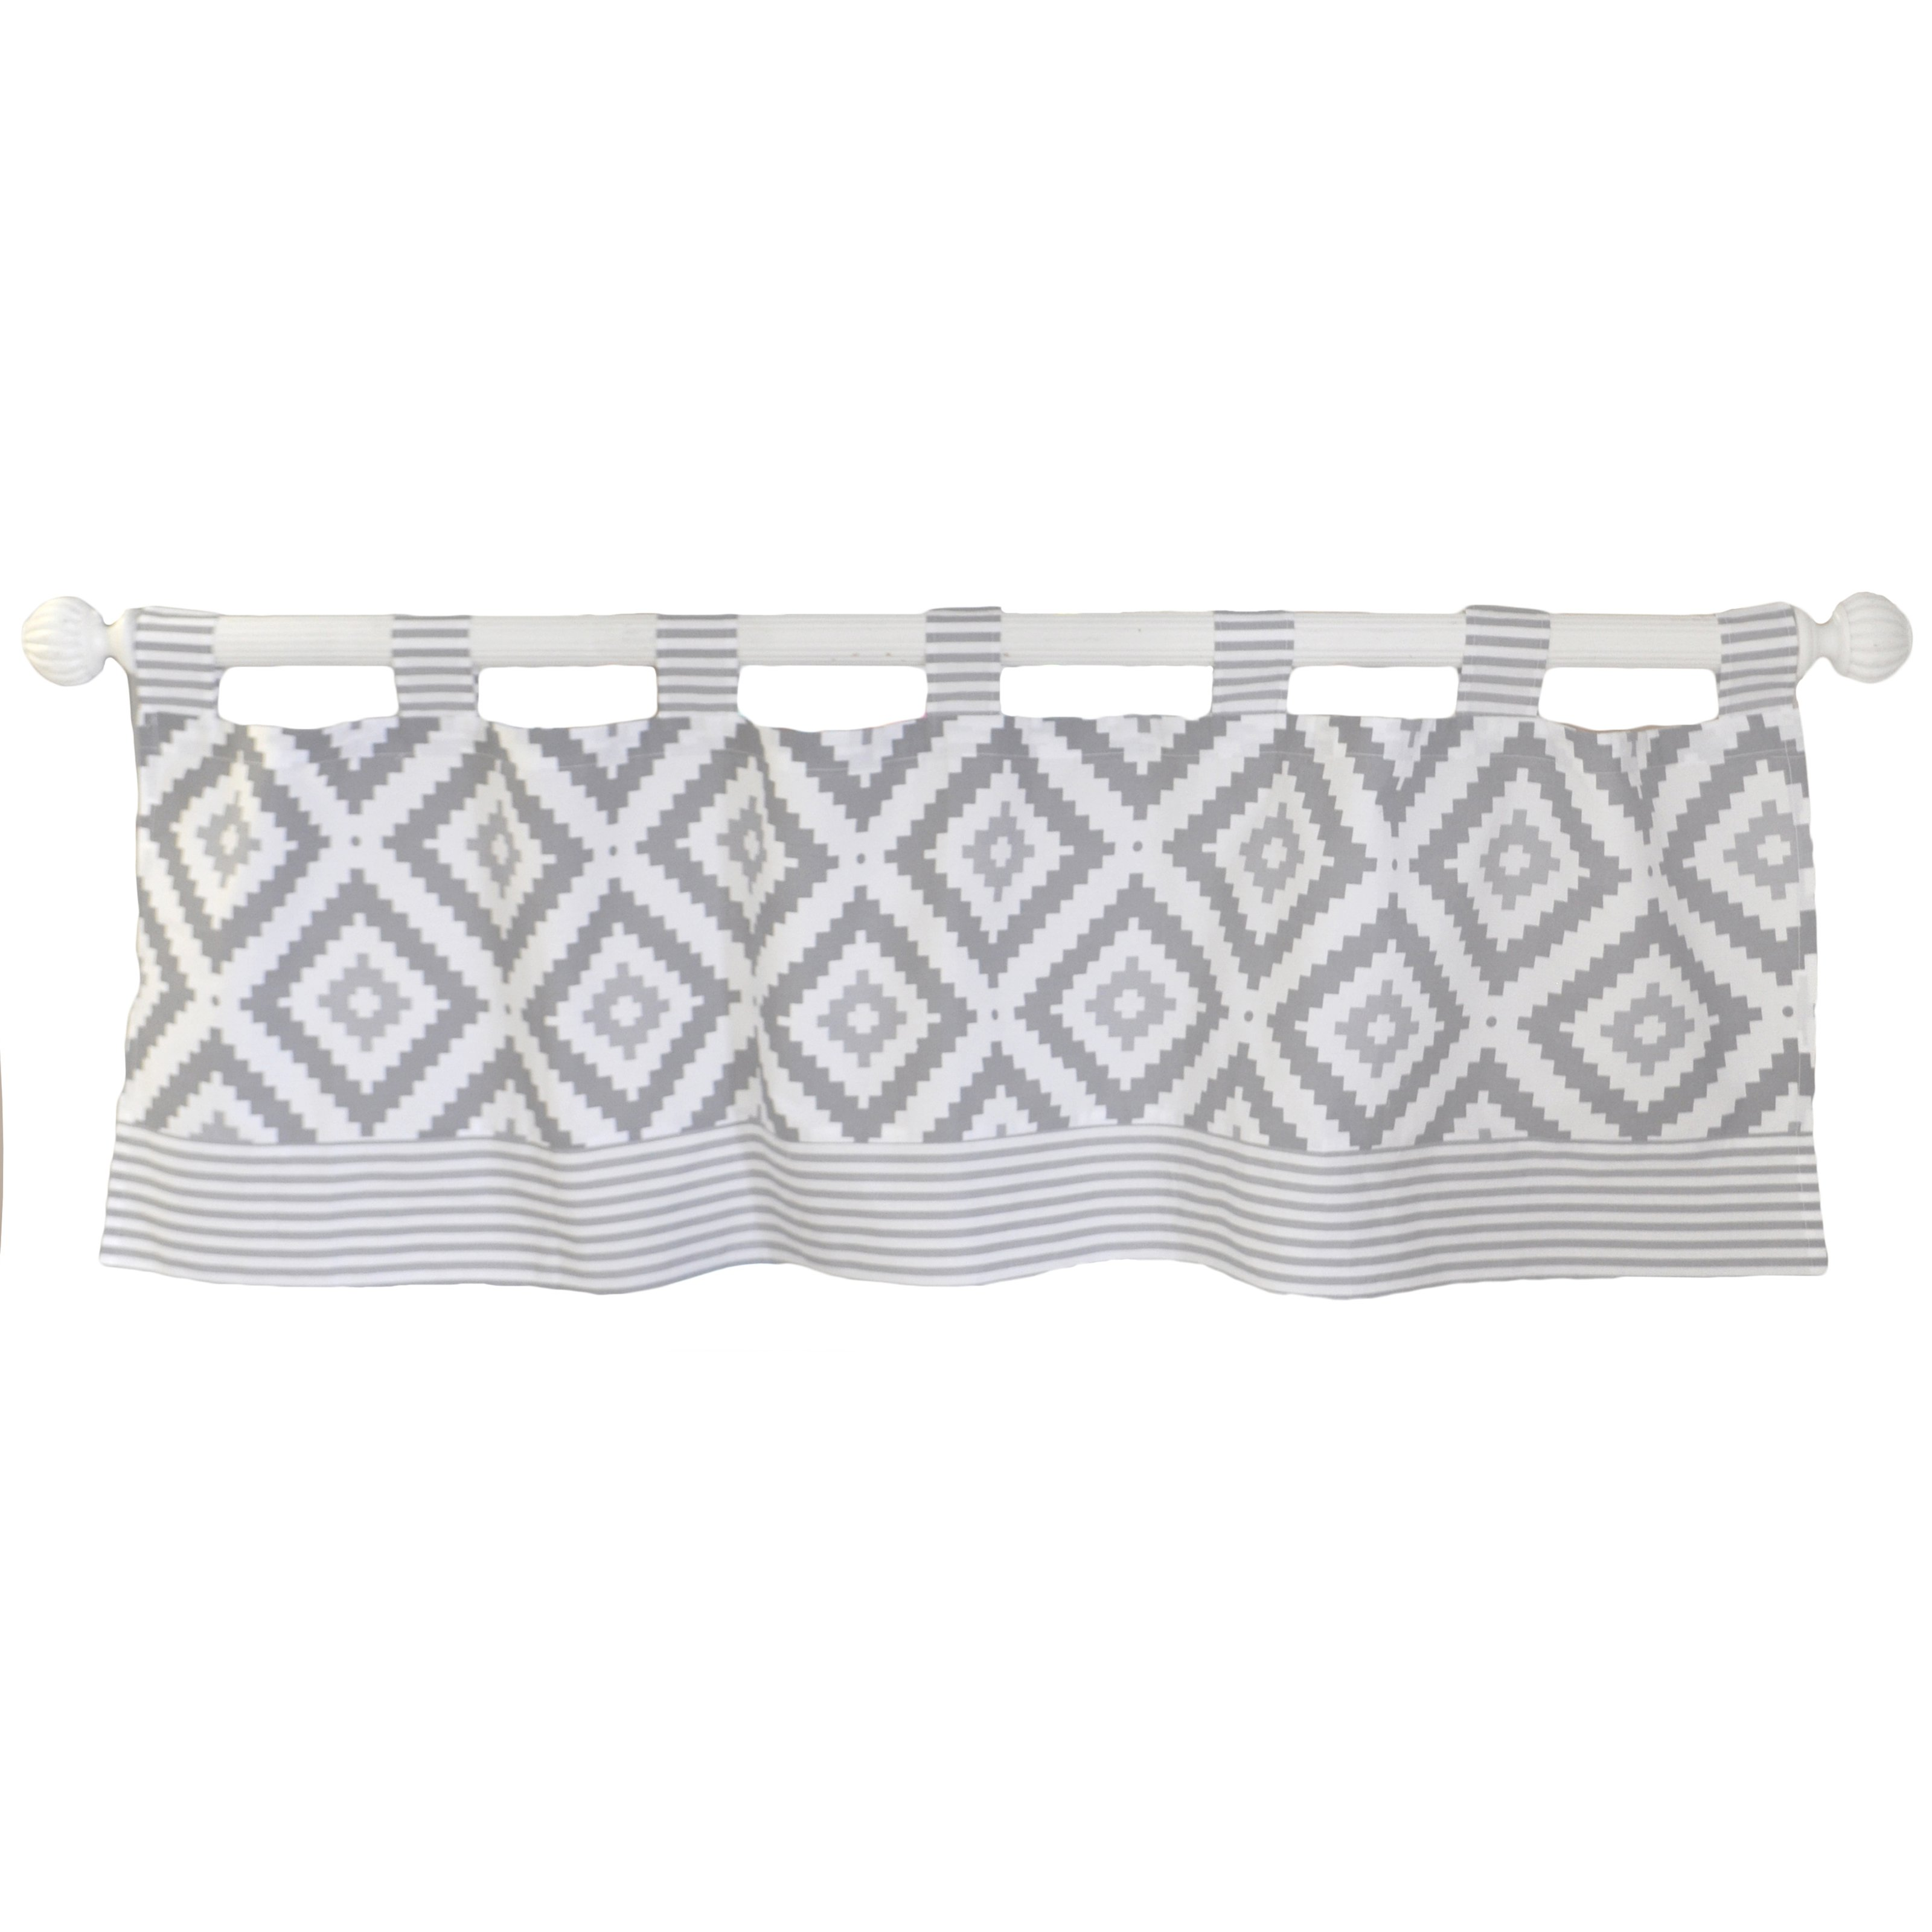 "Nursery Curtain Valance, ""IMagine"" by My Baby Sam by My Baby Sam%2C Inc."